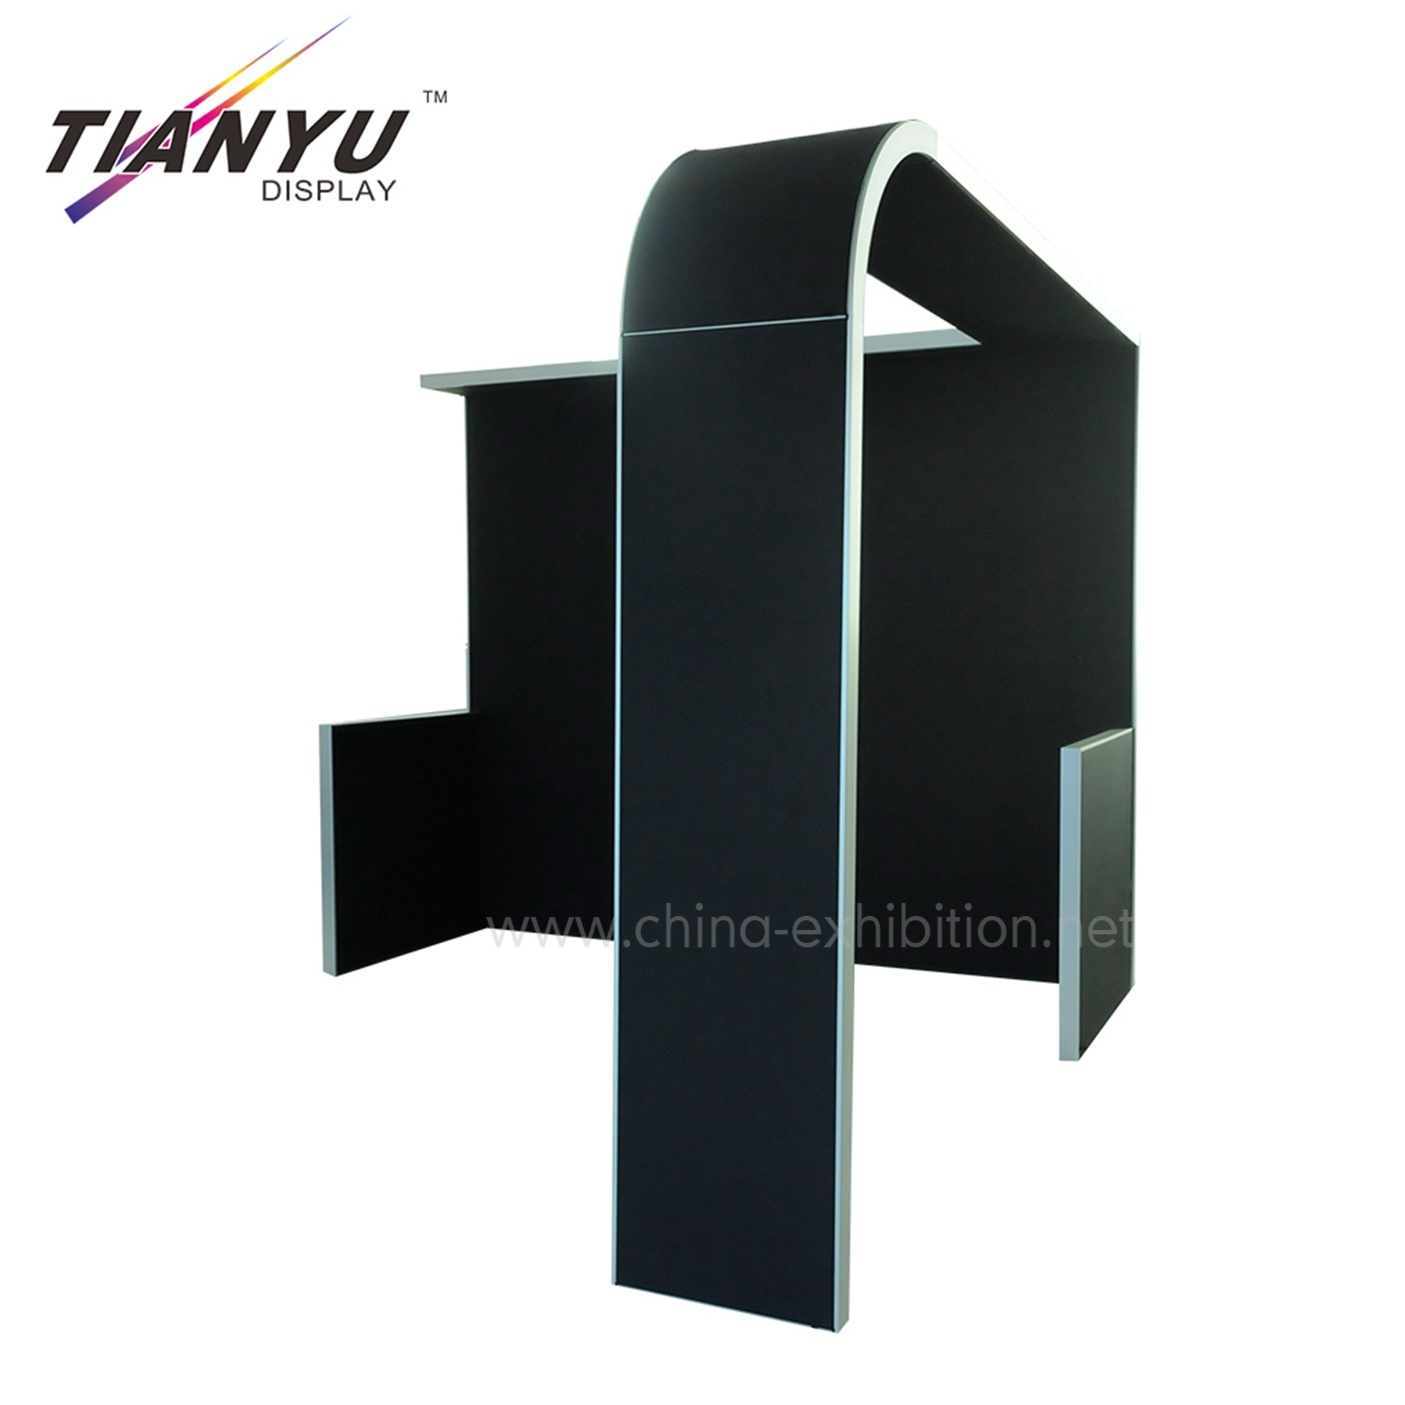 Exhibition Booth Materials : China aluminium material standard panel retail 3x3 size exhibition